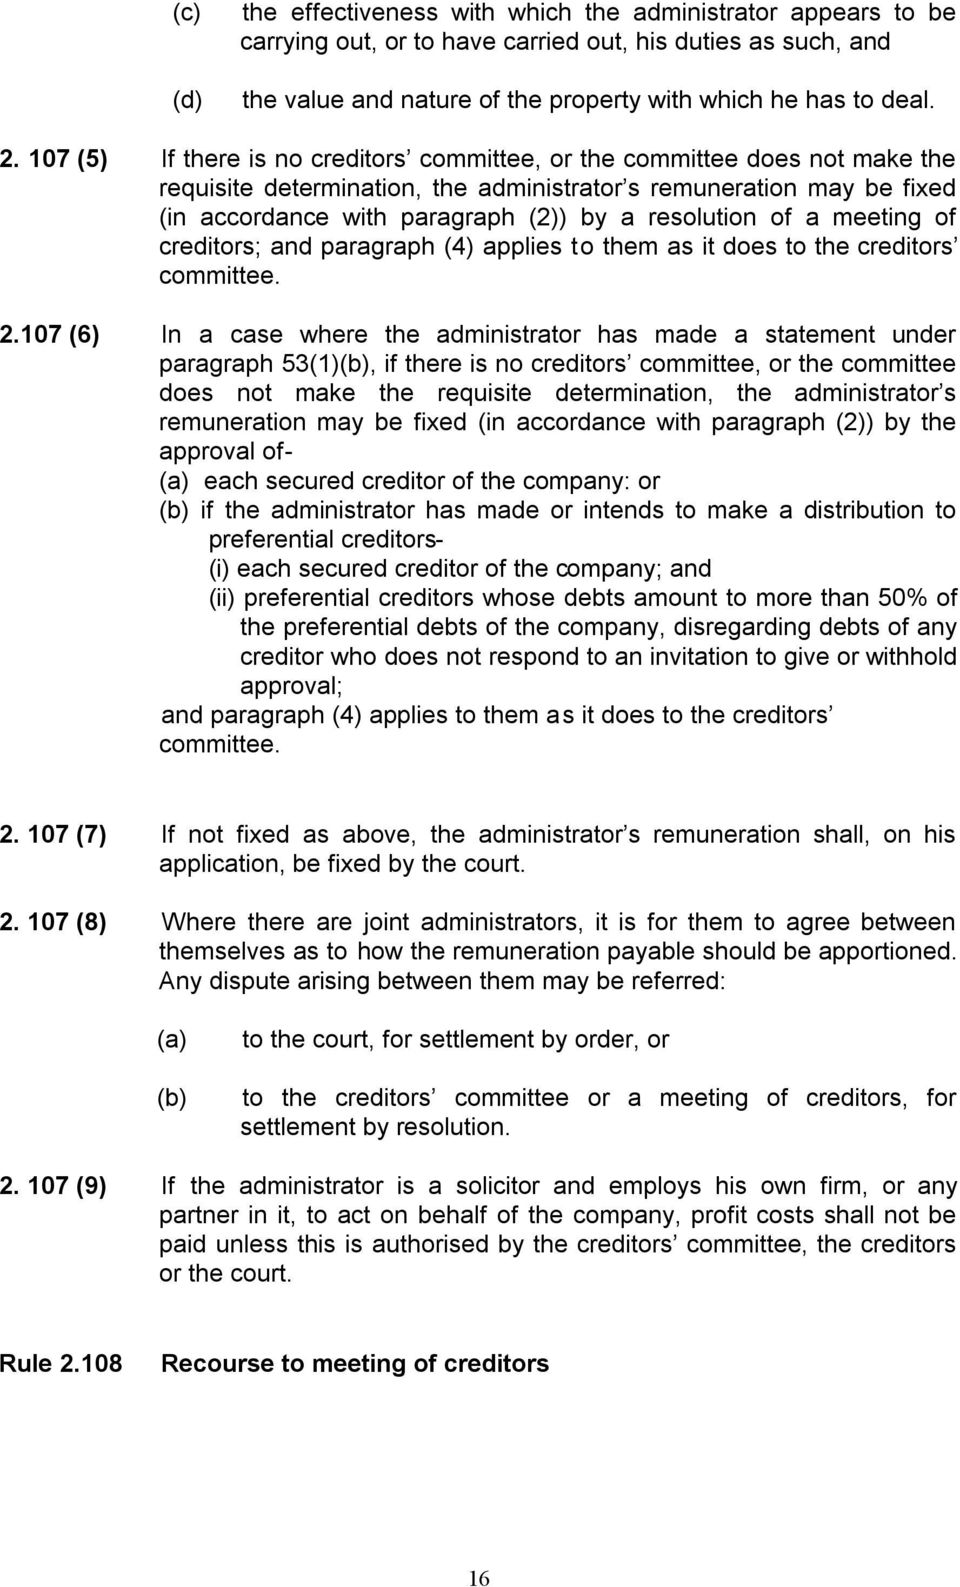 resolution of a meeting of creditors; and paragraph (4) applies to them as it does to the creditors committee. 2.